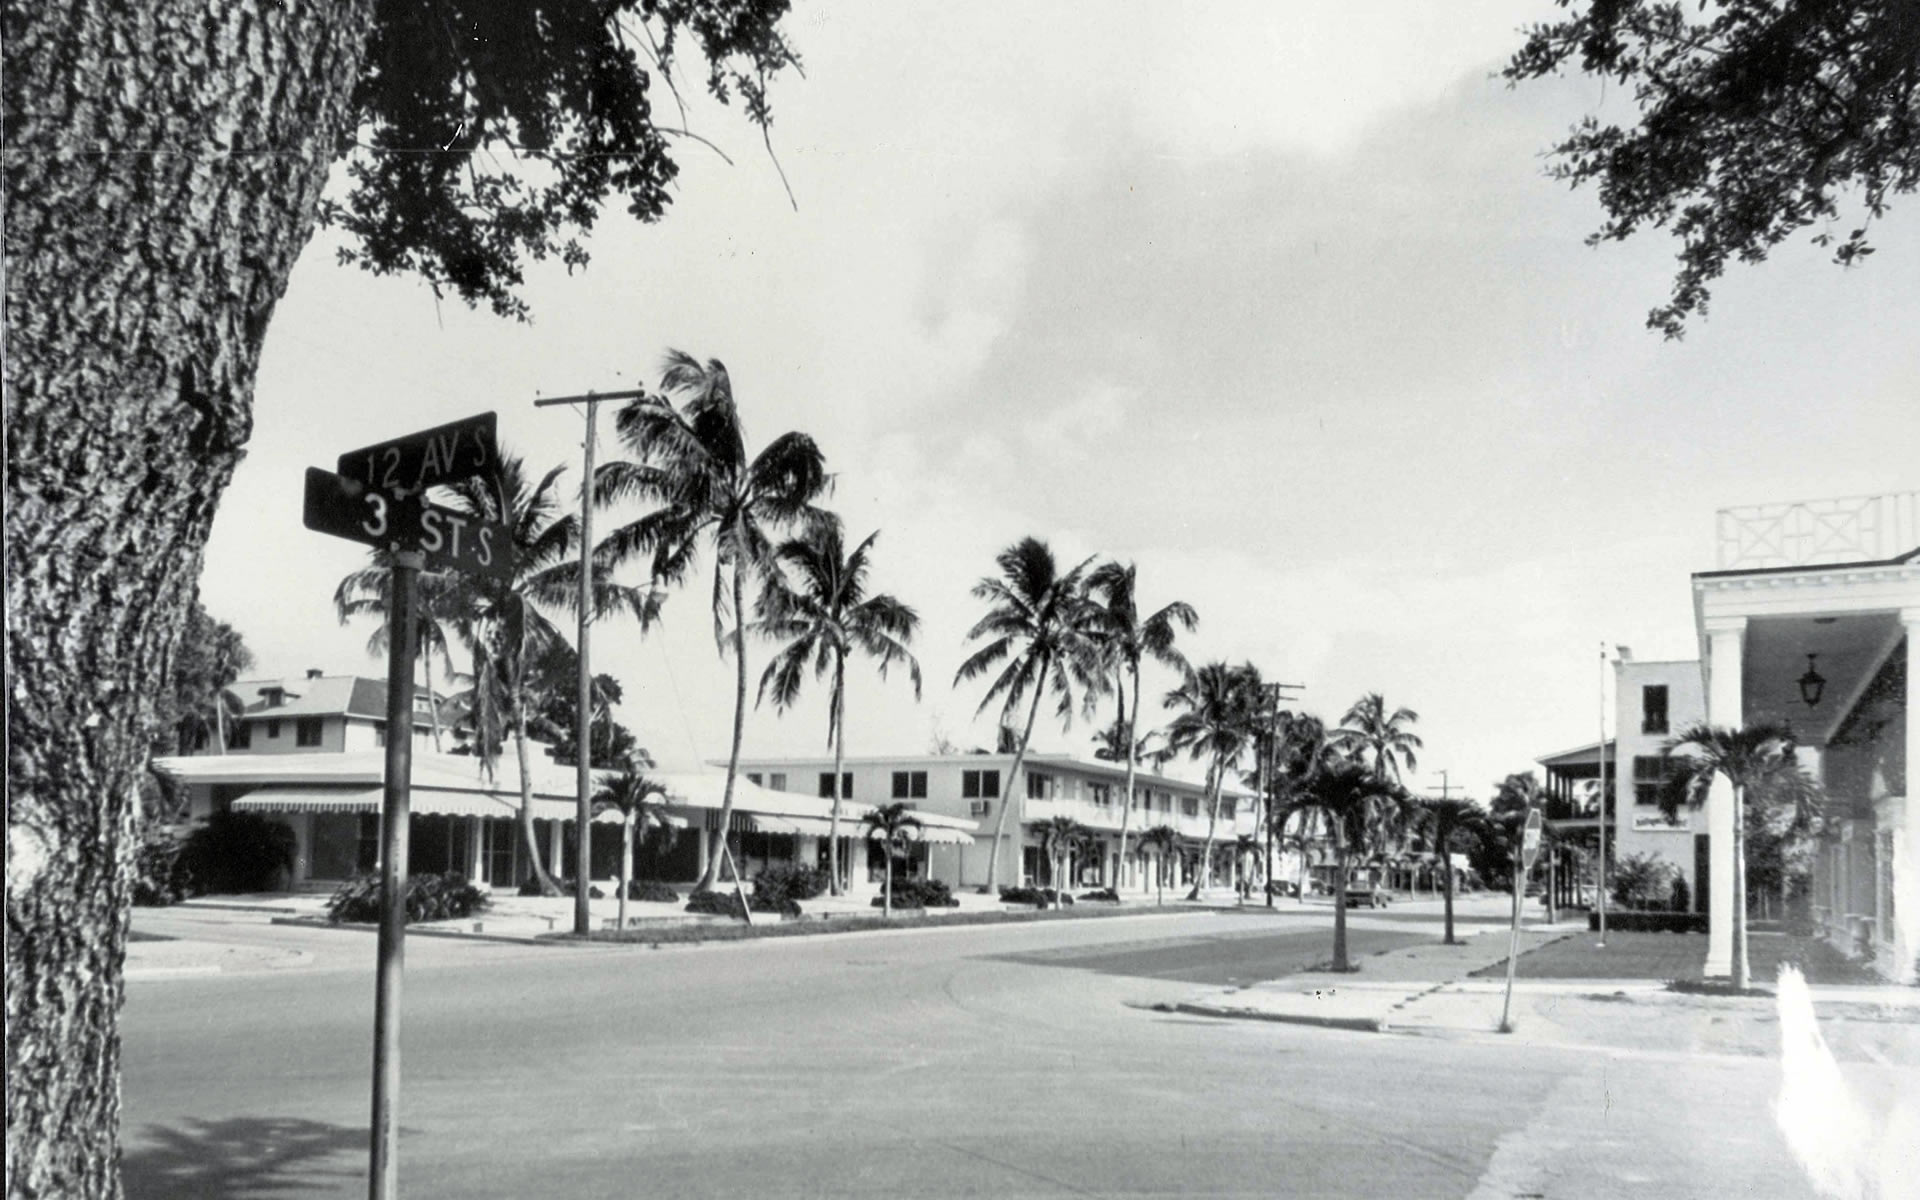 Third Street South from 12th Avenue showing The Beach Patio Building (then Mark, Fore and Strike and now The Englishman and Sea Salt). The former Brae Bedell Building is next to it.